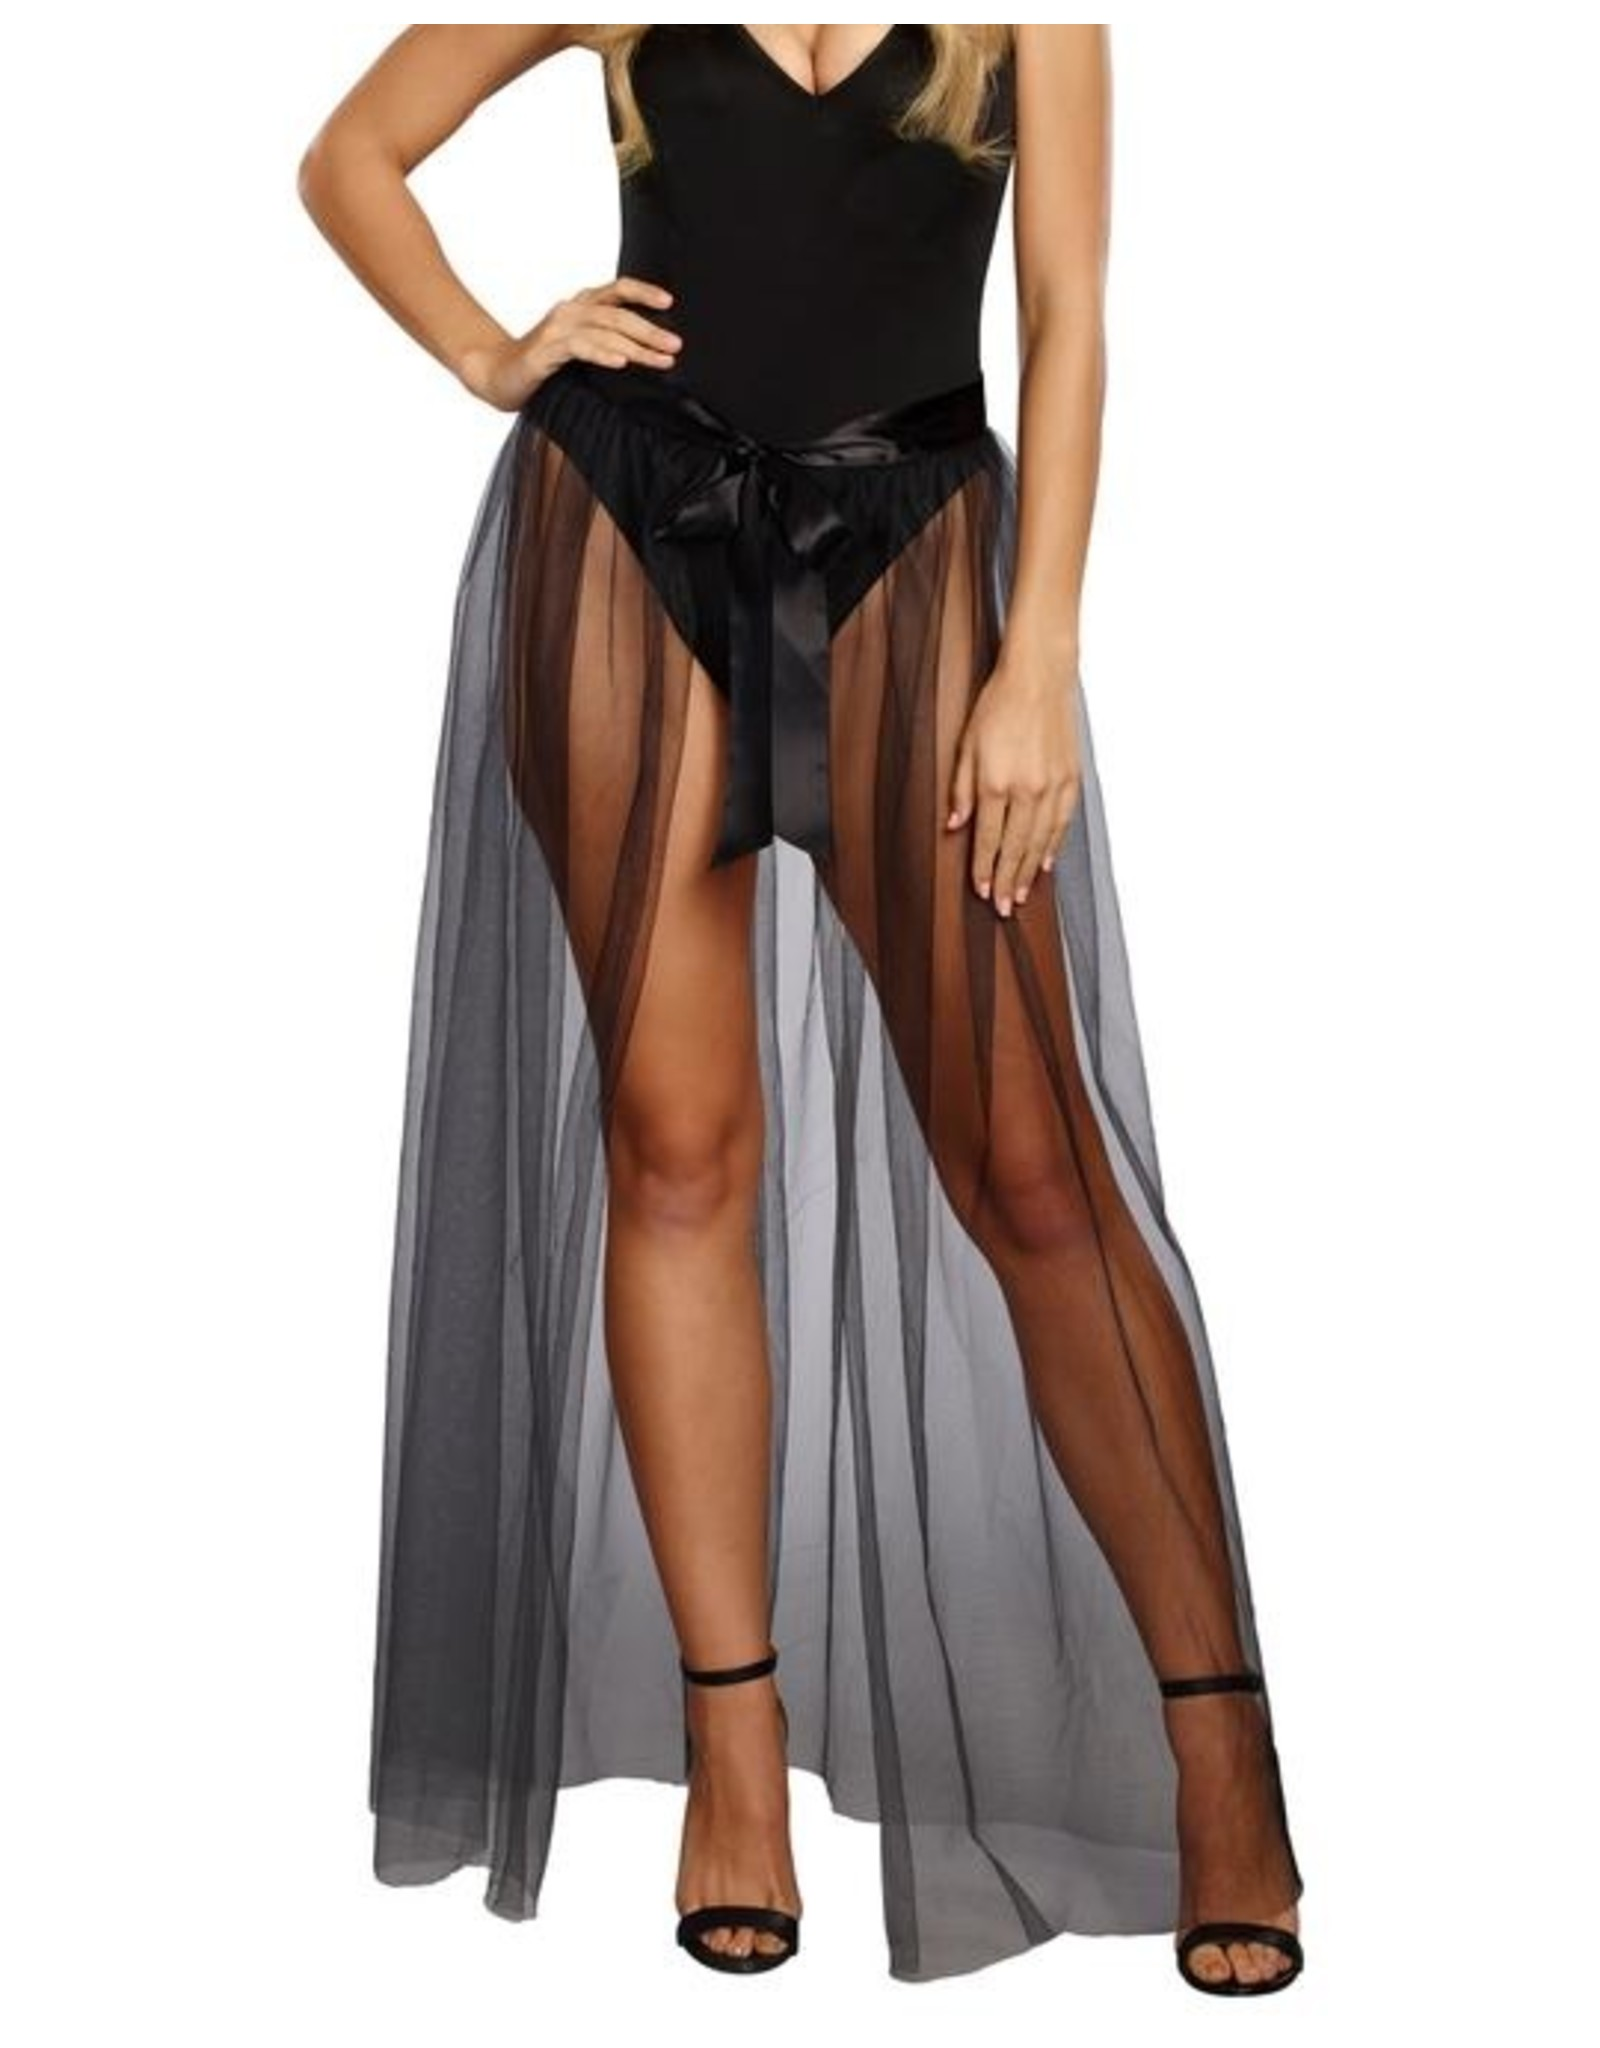 Dreamgirl Sheer Tie Front Skirt S/M